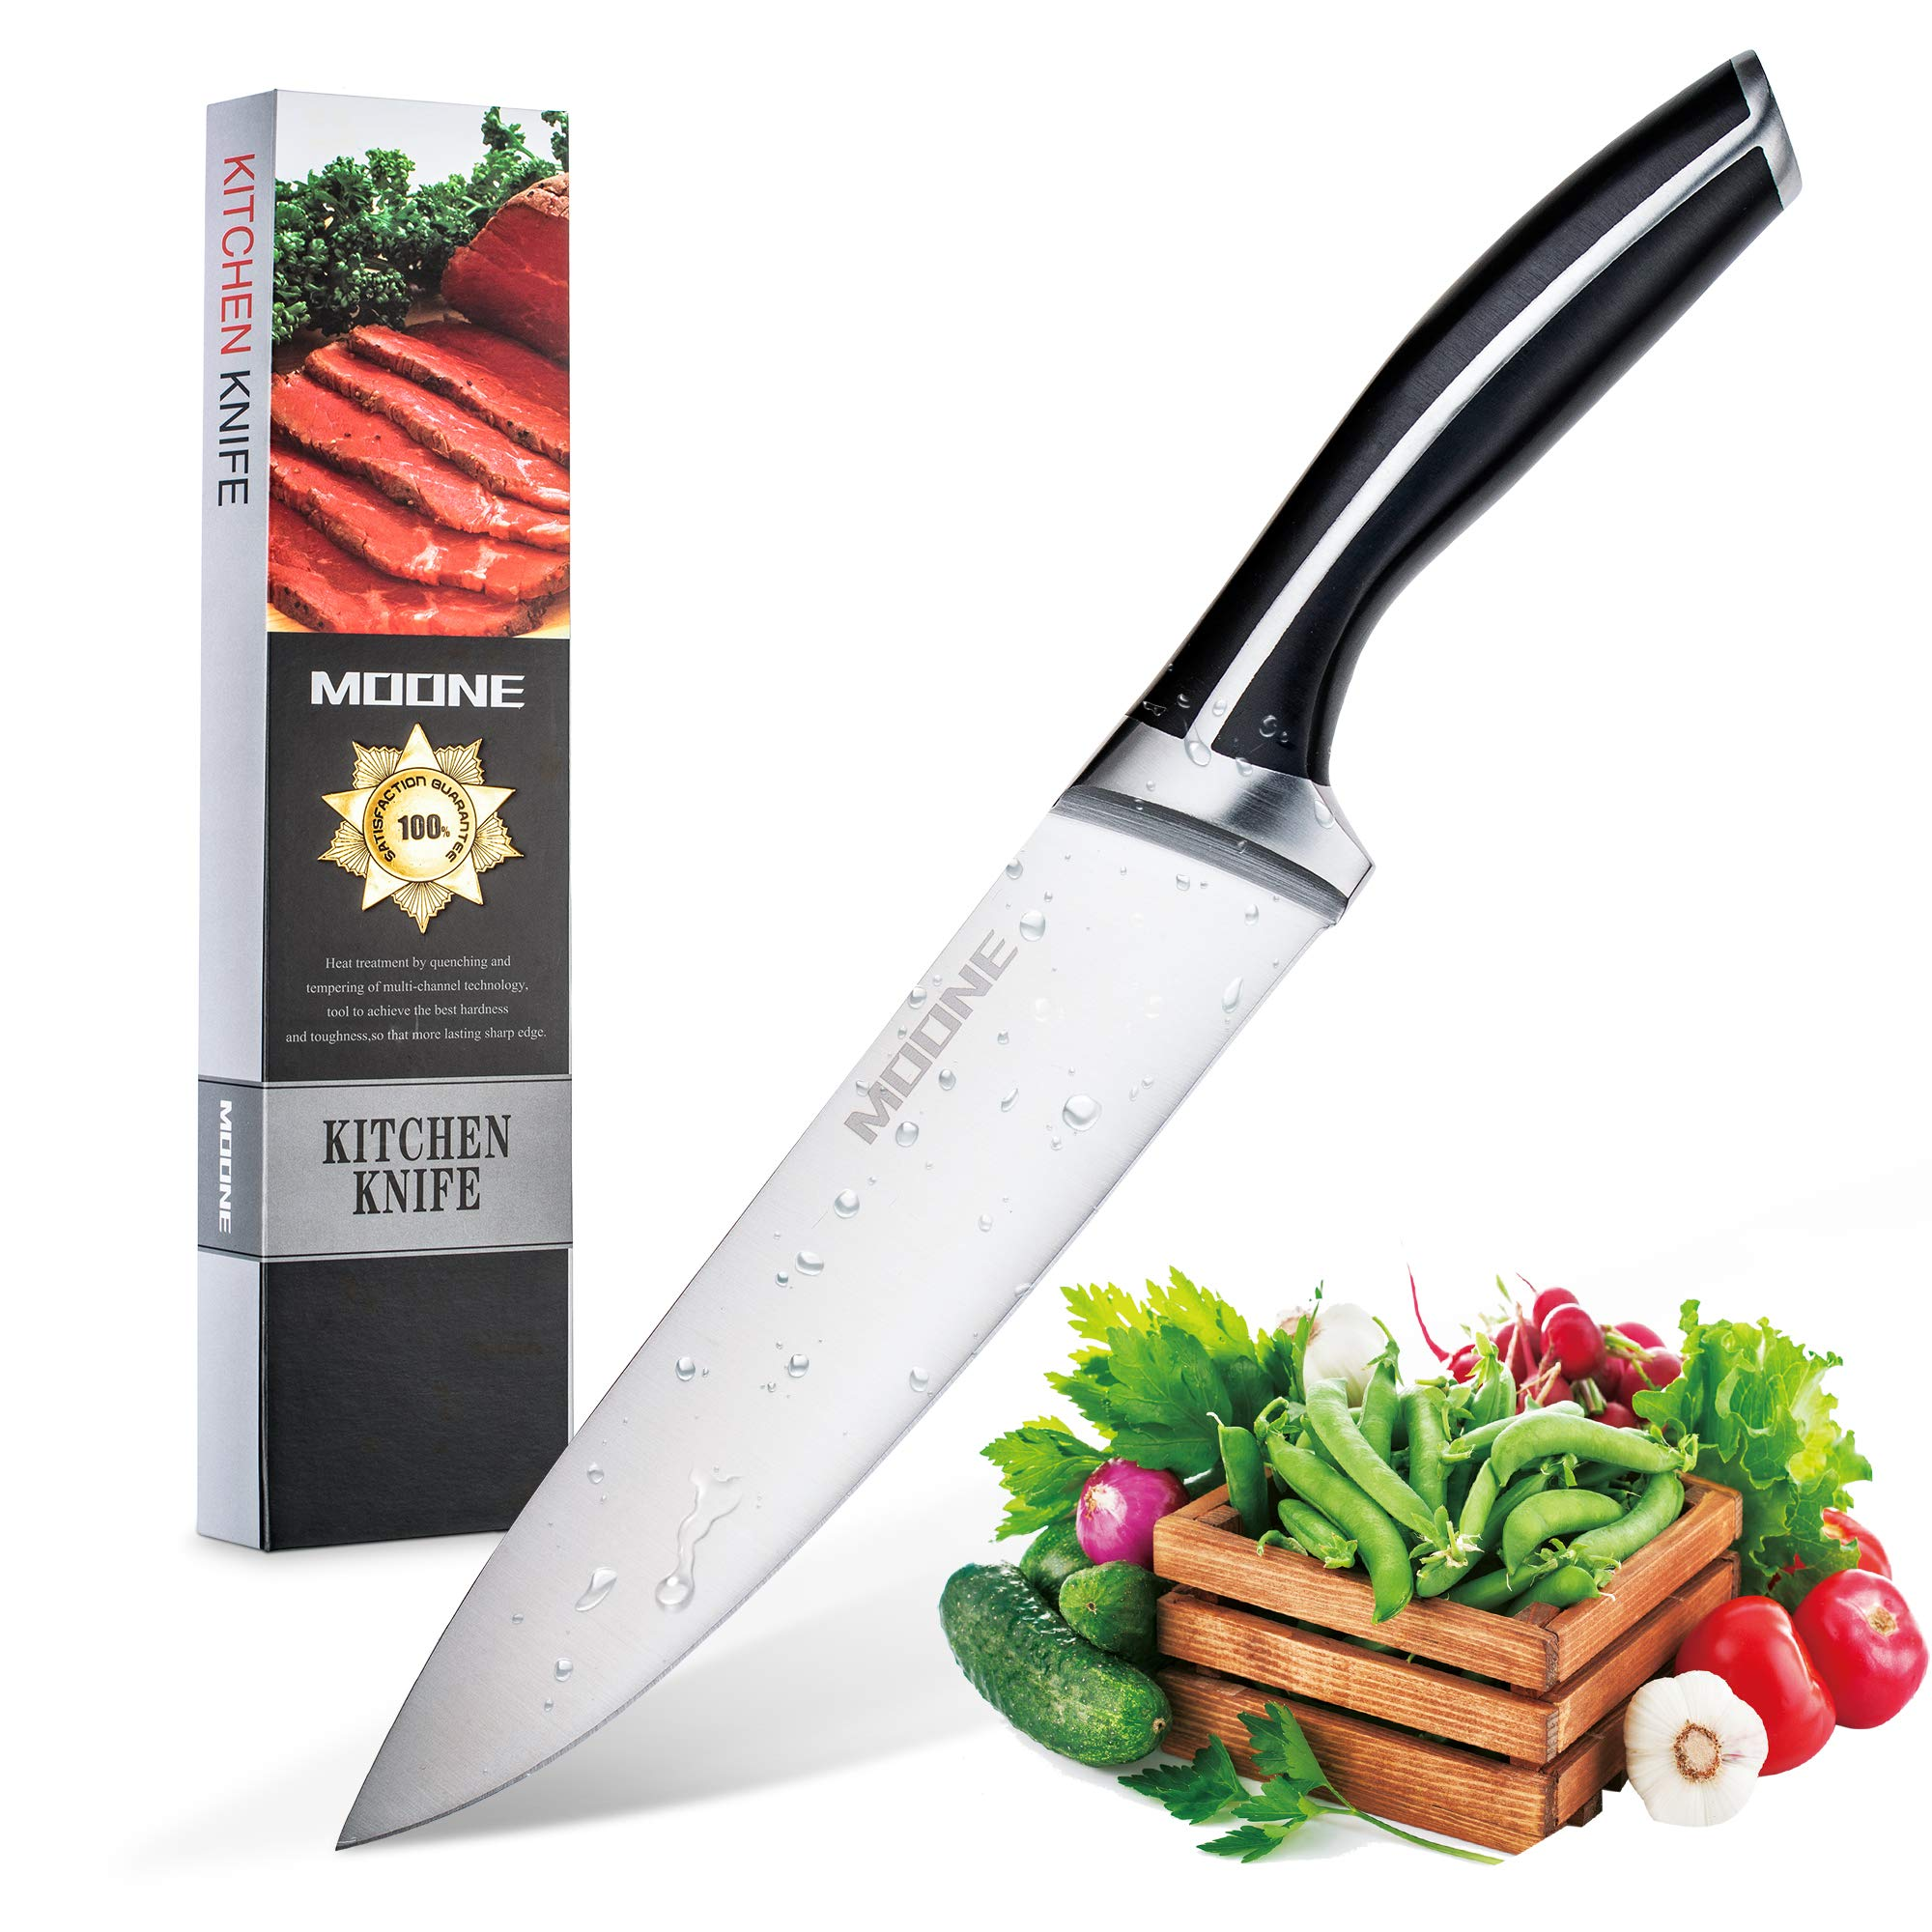 Moone 8 inch kitchen Chef's Knife Sharp Blade Ergonomic Handle High Carbon Stainless Steel Utility Knives